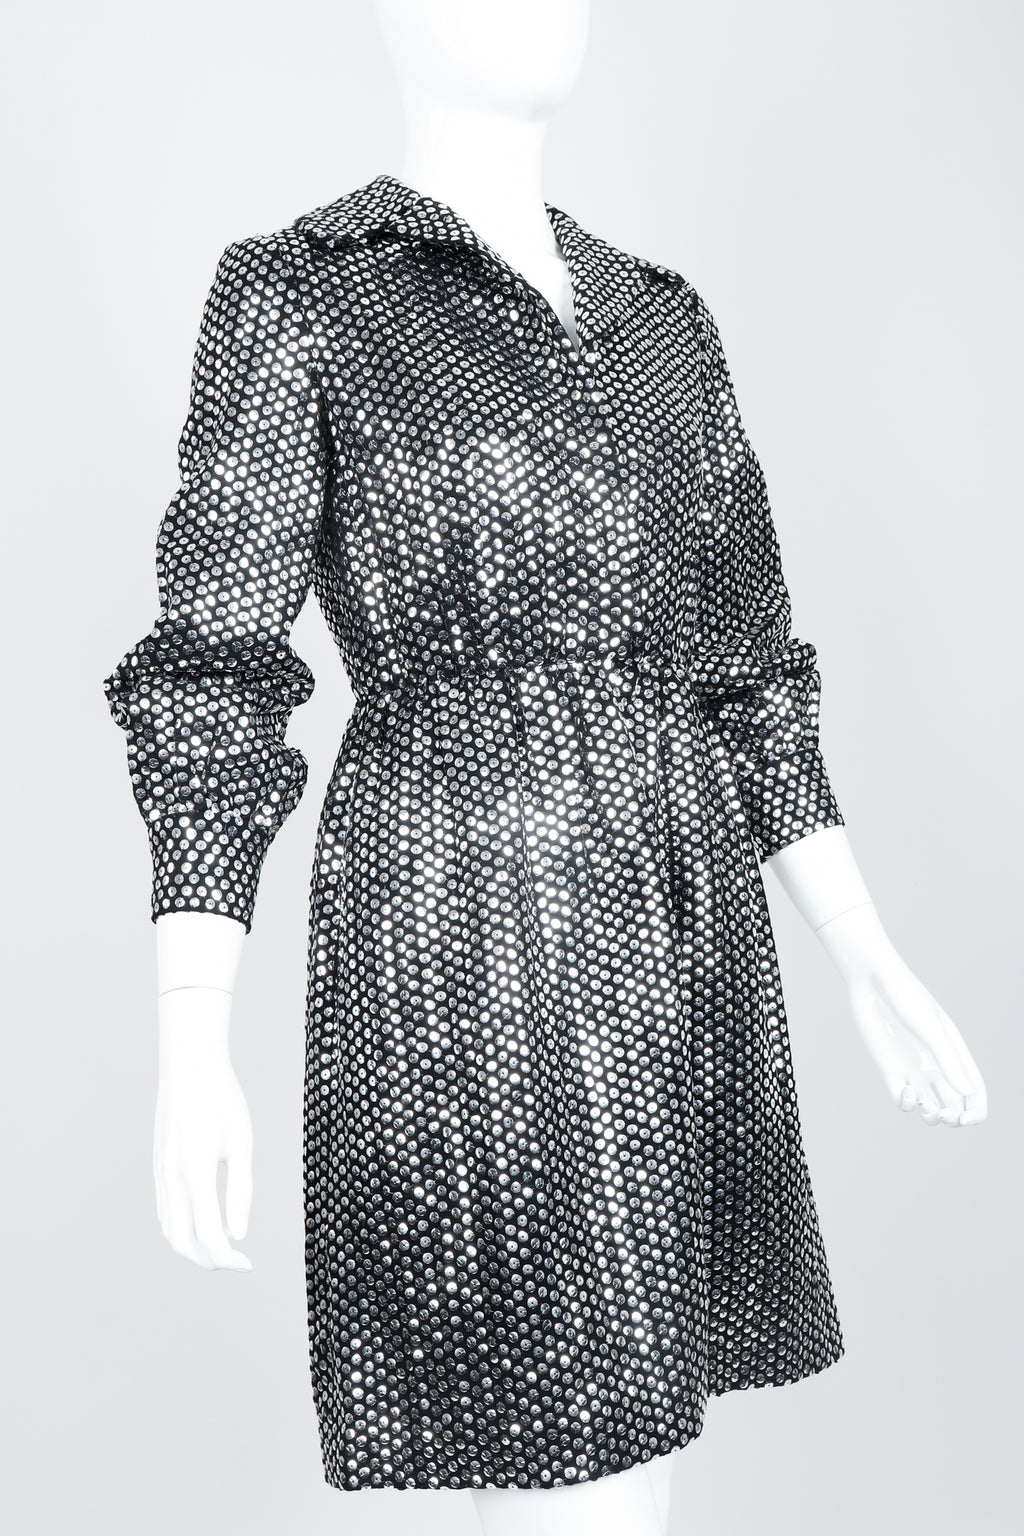 Vintage Joan Leslie by Kasper Sequin Mirror Shirtwaist Dress on Mannequin front crop at Recess